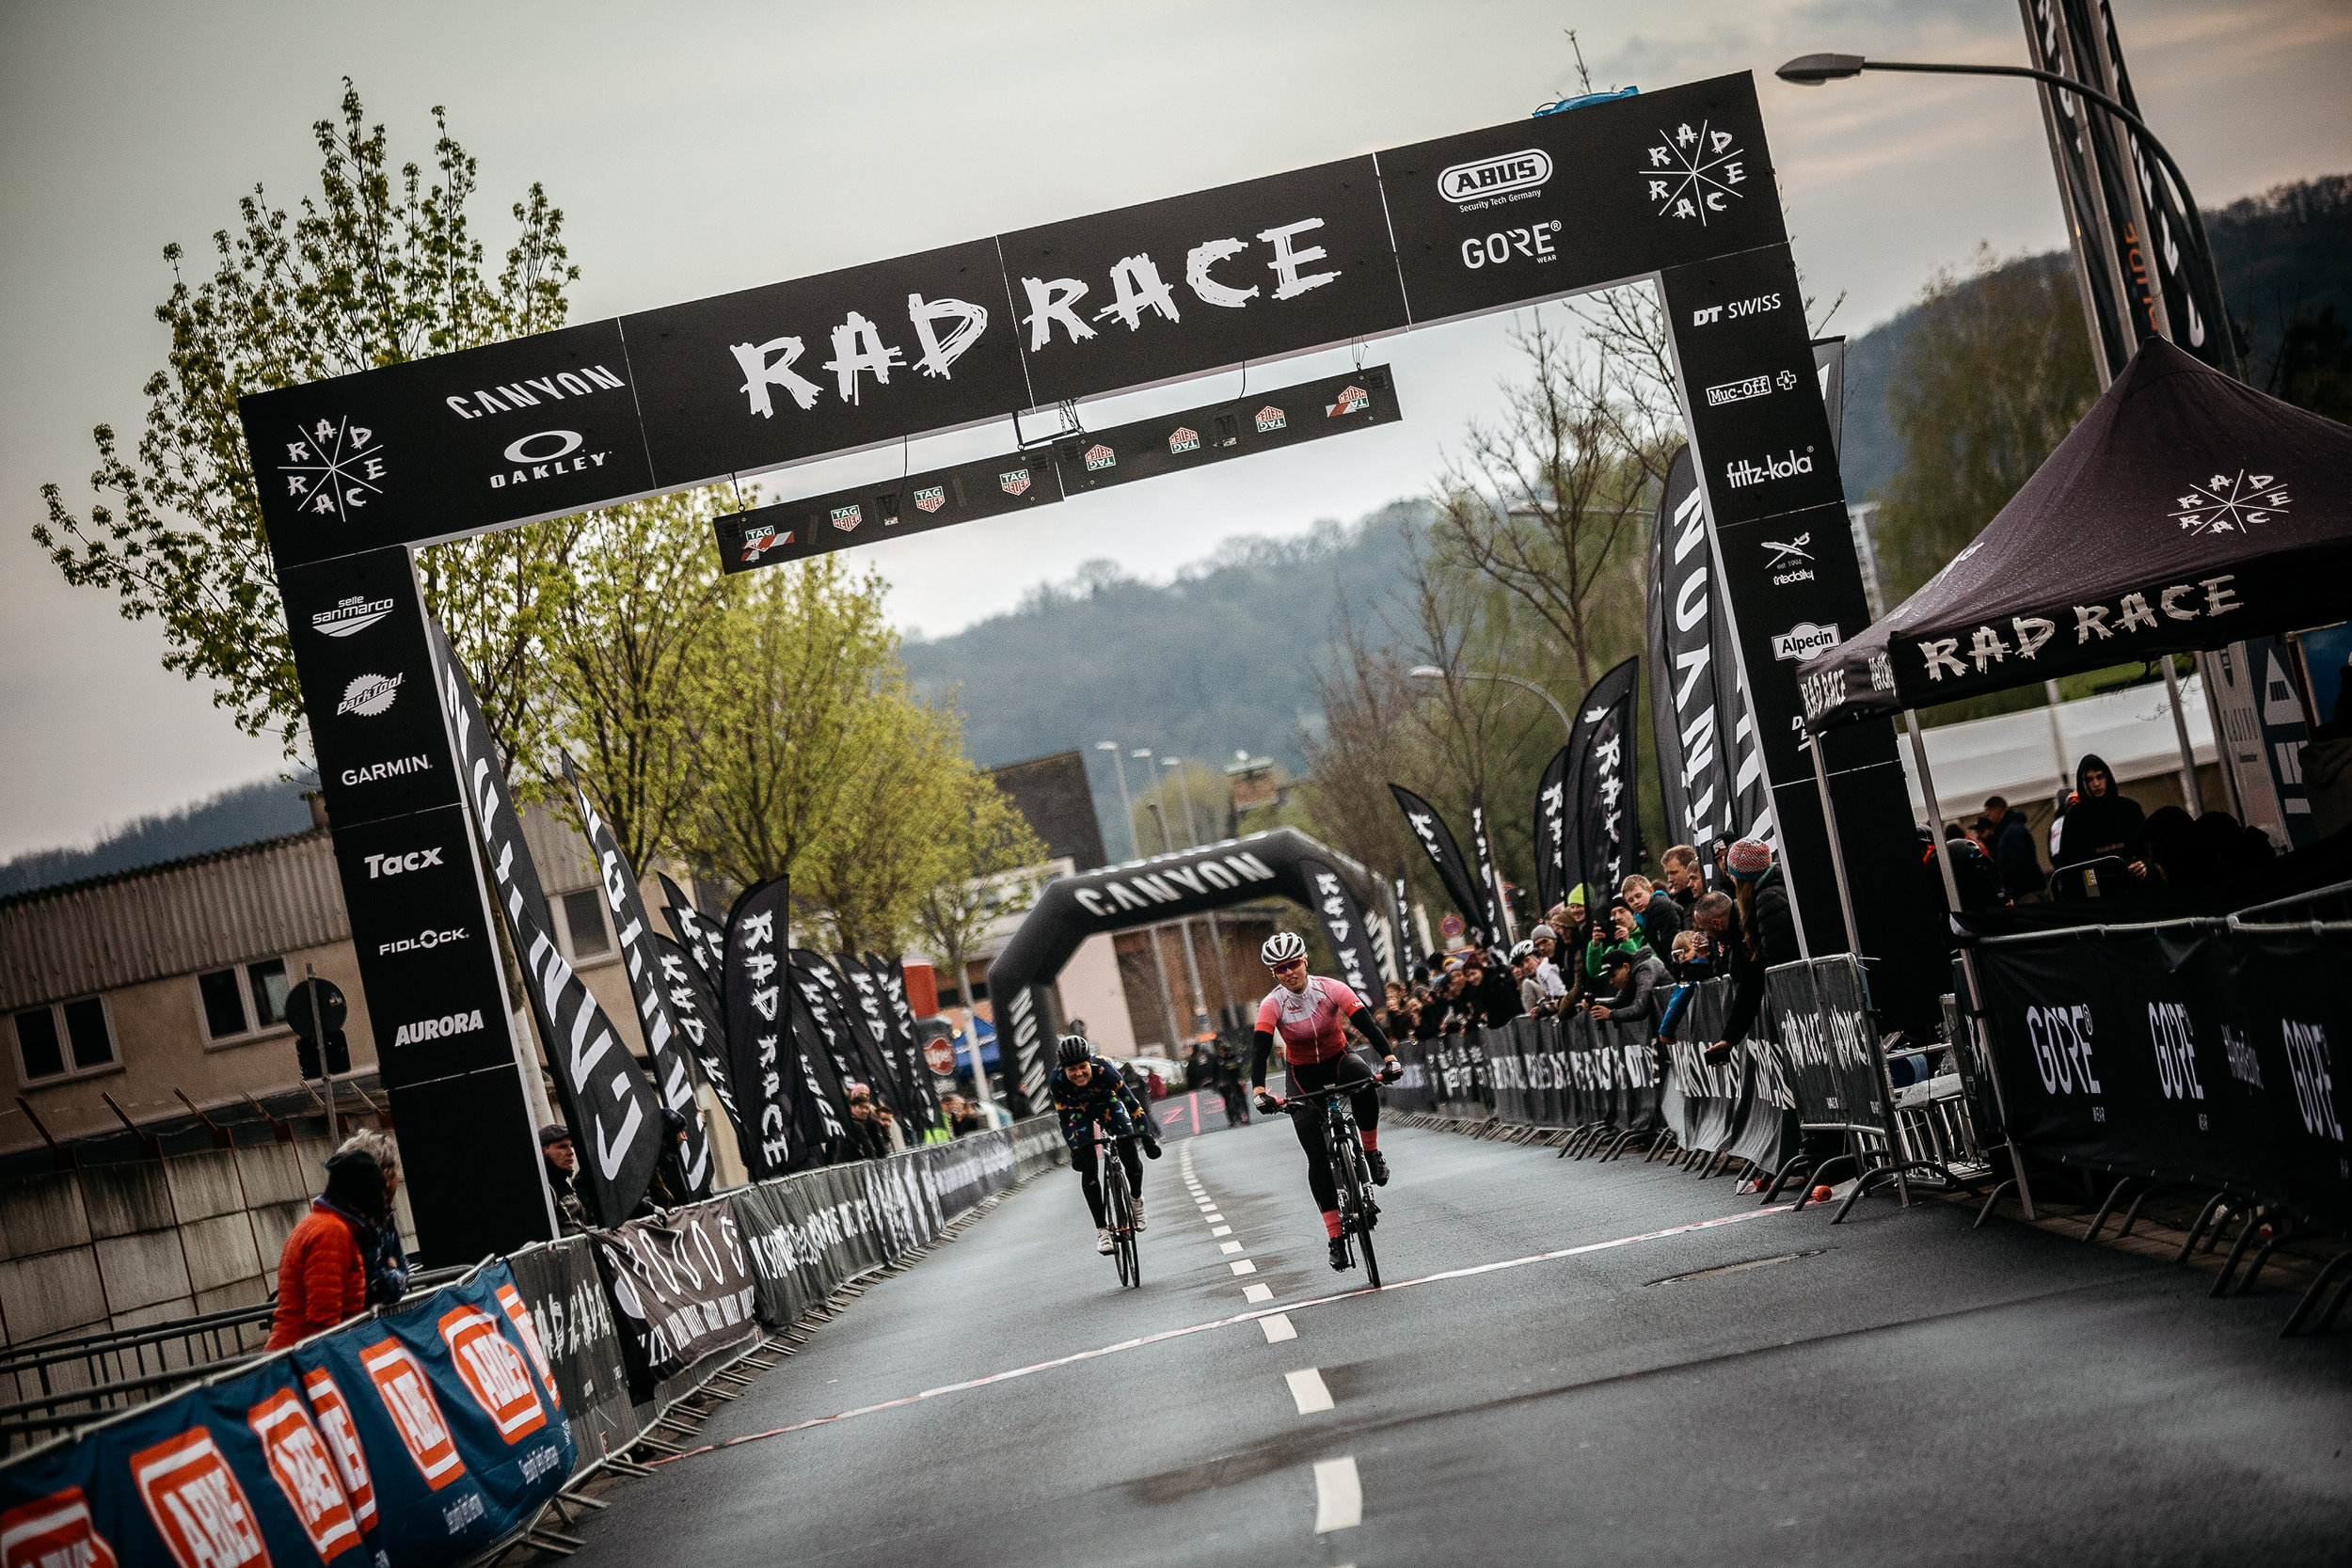 Rad-Race_Battle_13-04-2019_A8A4256.jpg